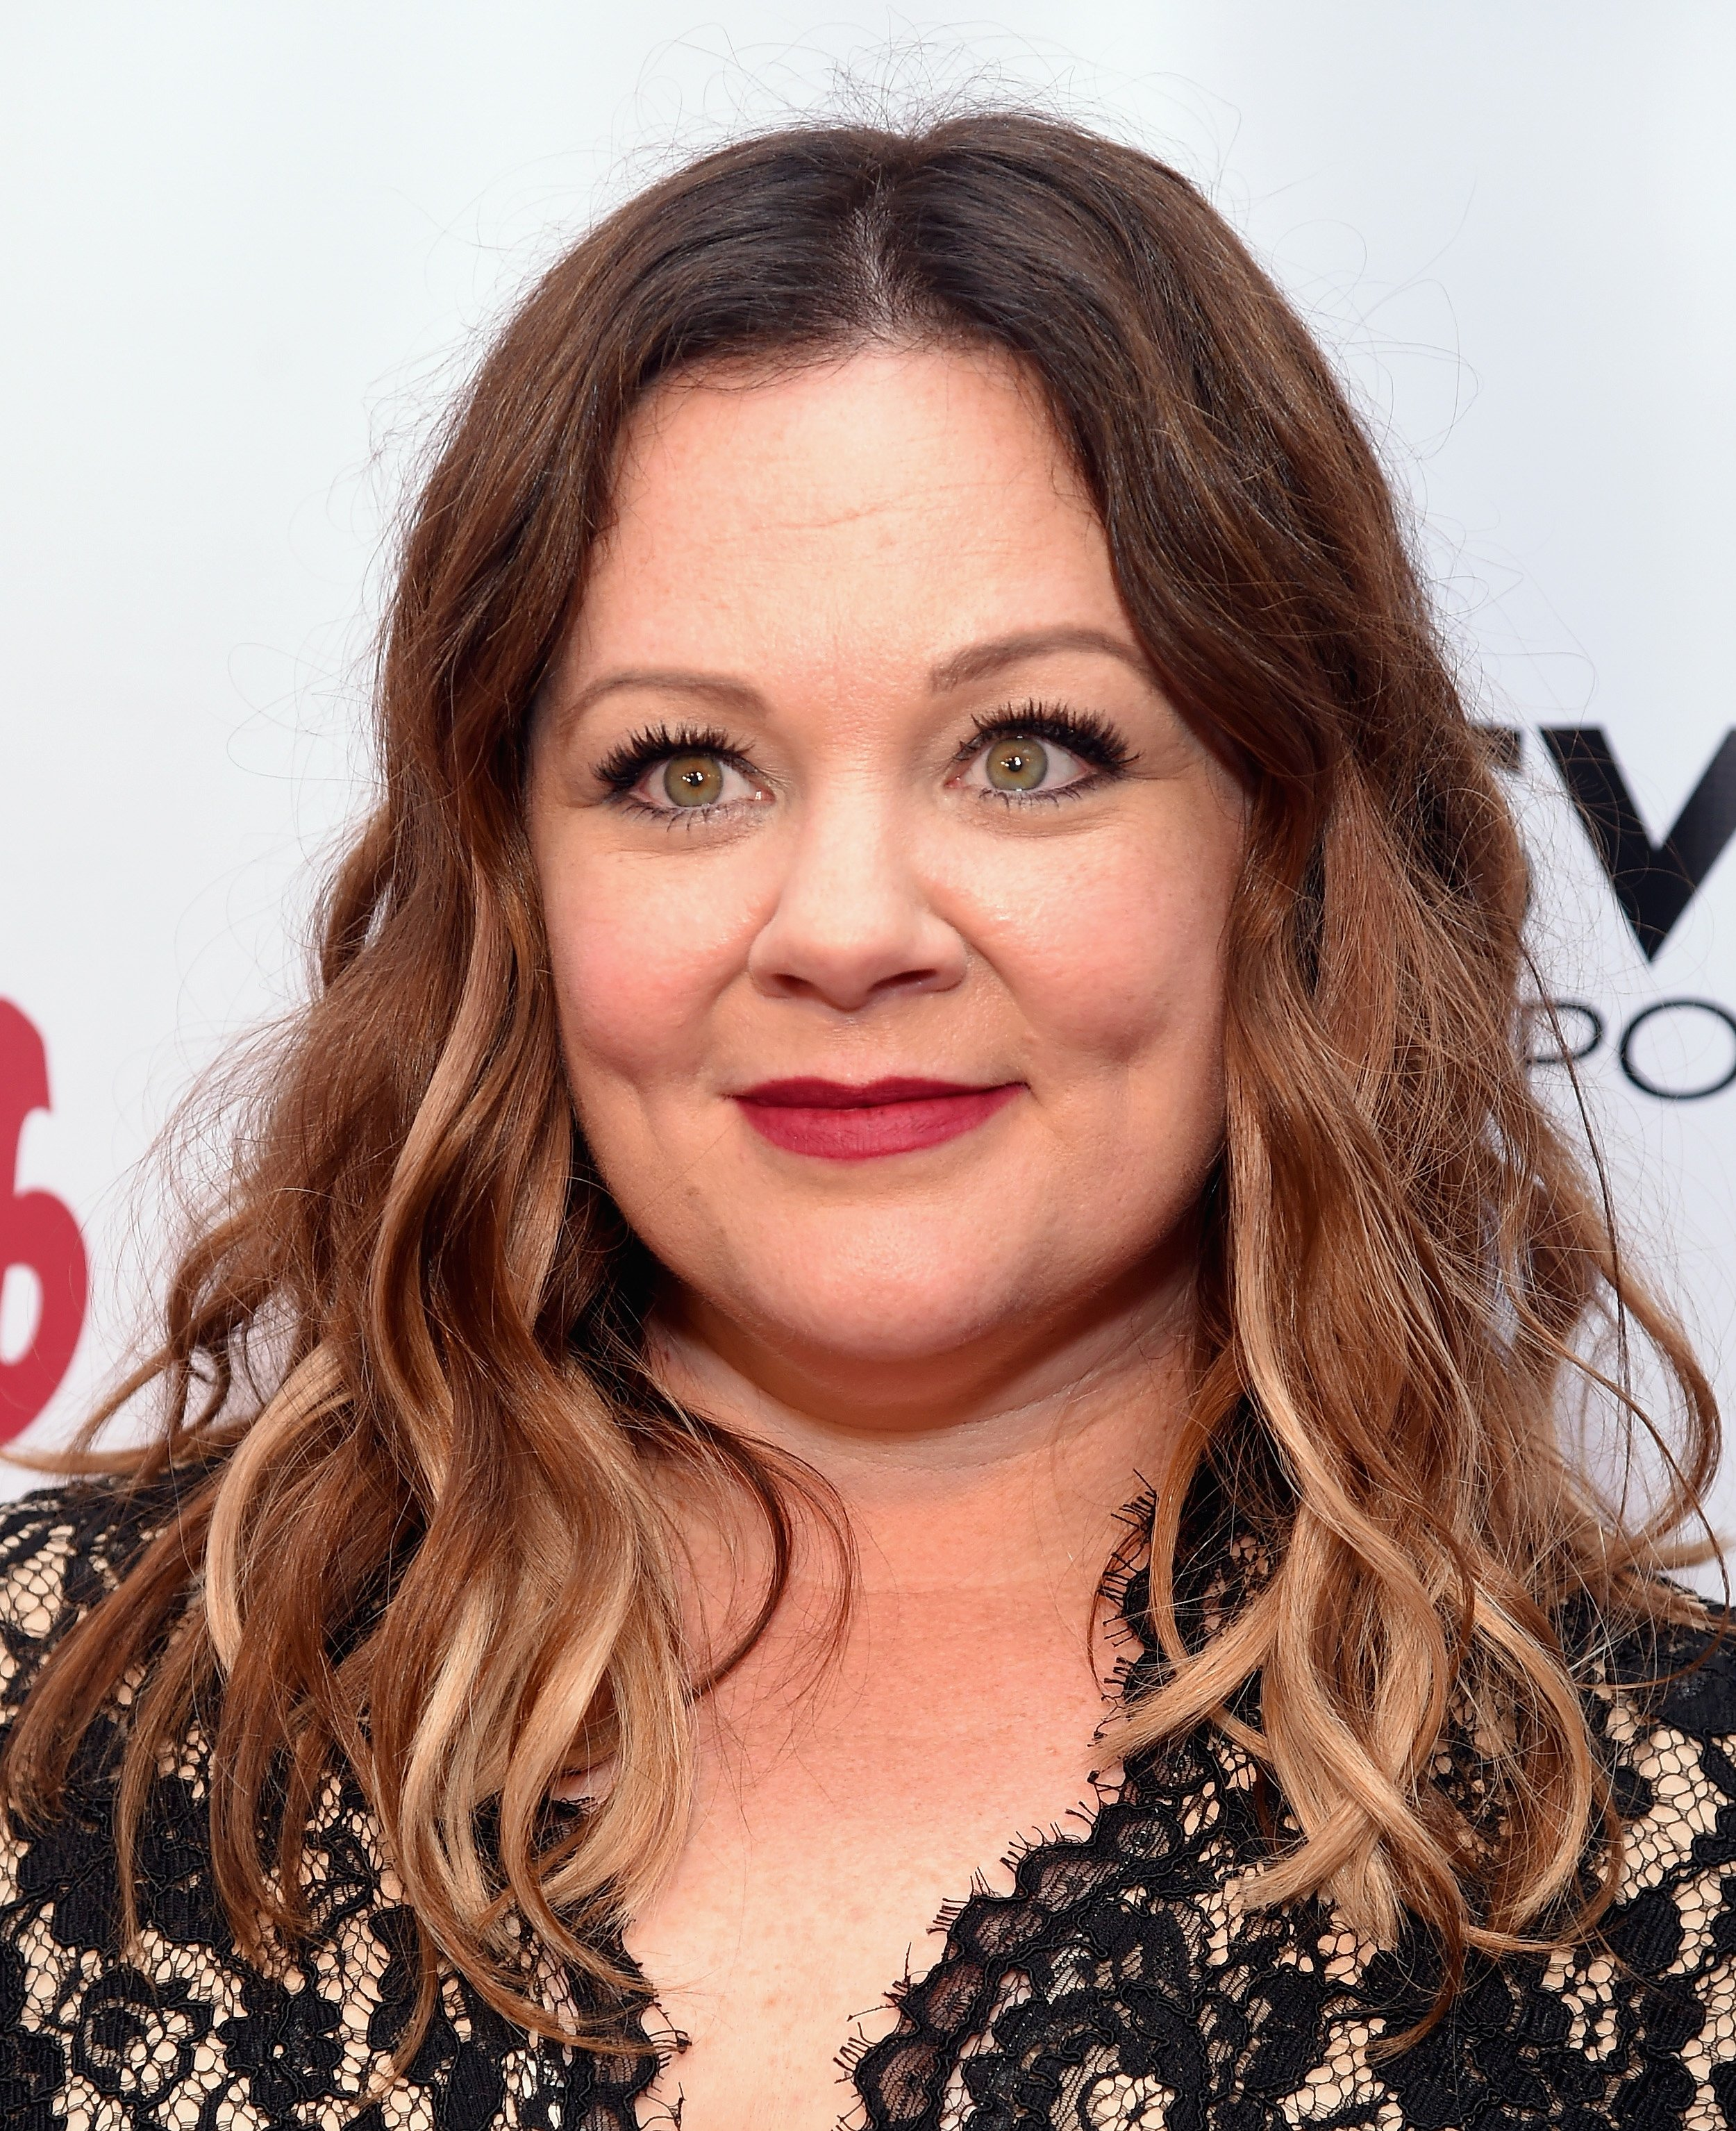 Melissa McCarthy at the Gildafest '16 on July 12, 2016 in New York City. |Photo: Getty Images